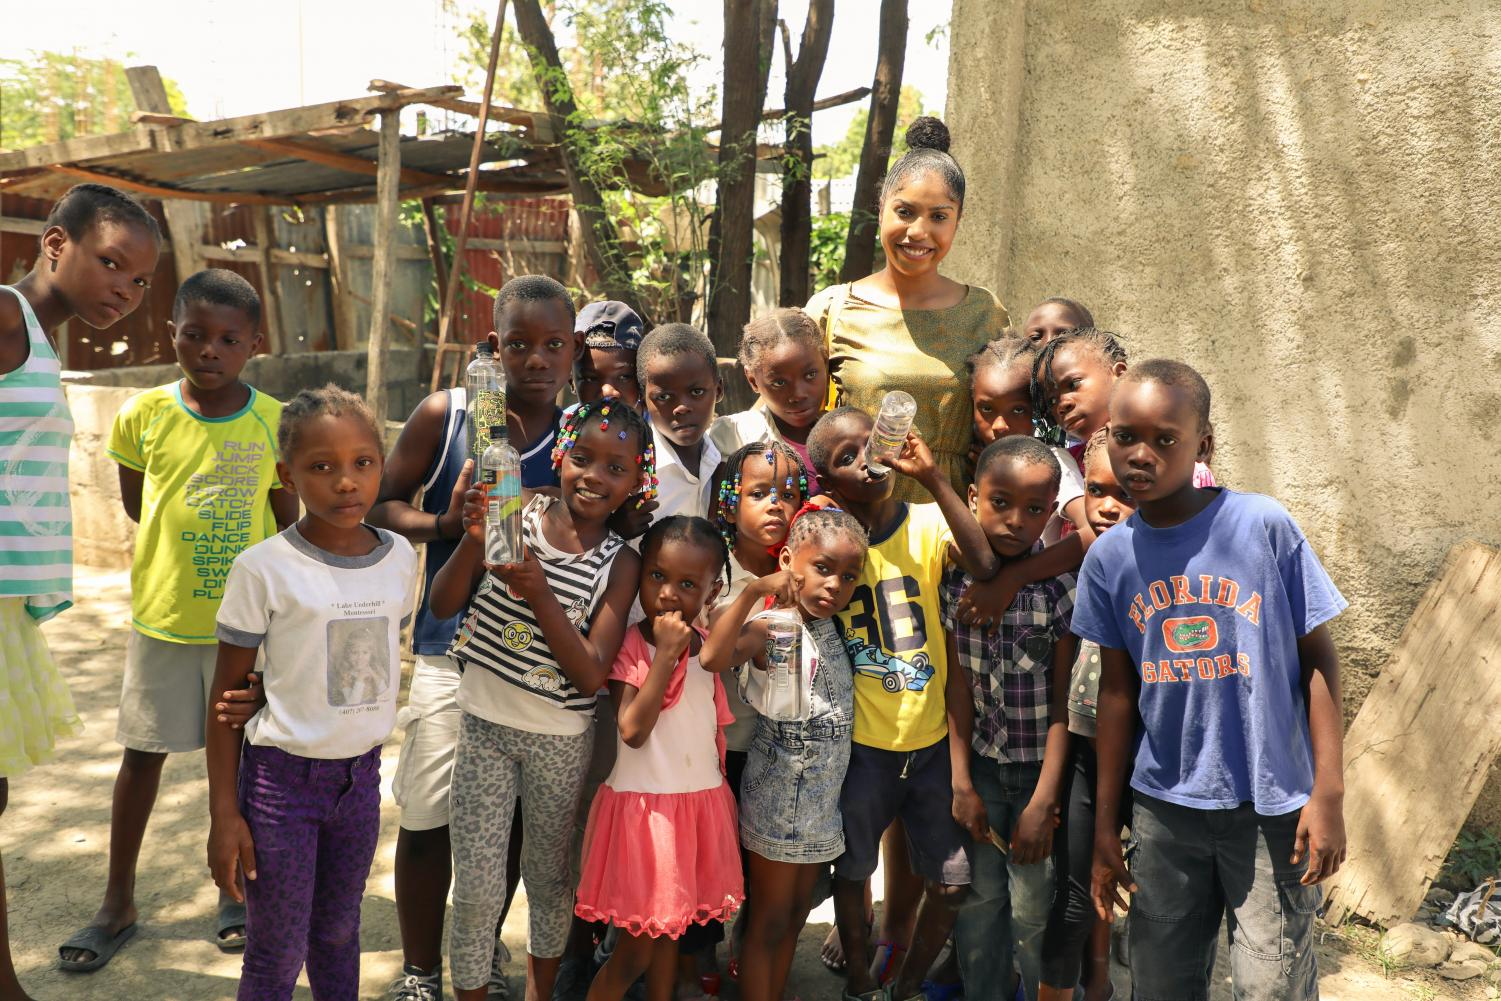 The group returned from the trip determined to build a school in Haiti.  Photo courtesy of Steven Duclaire